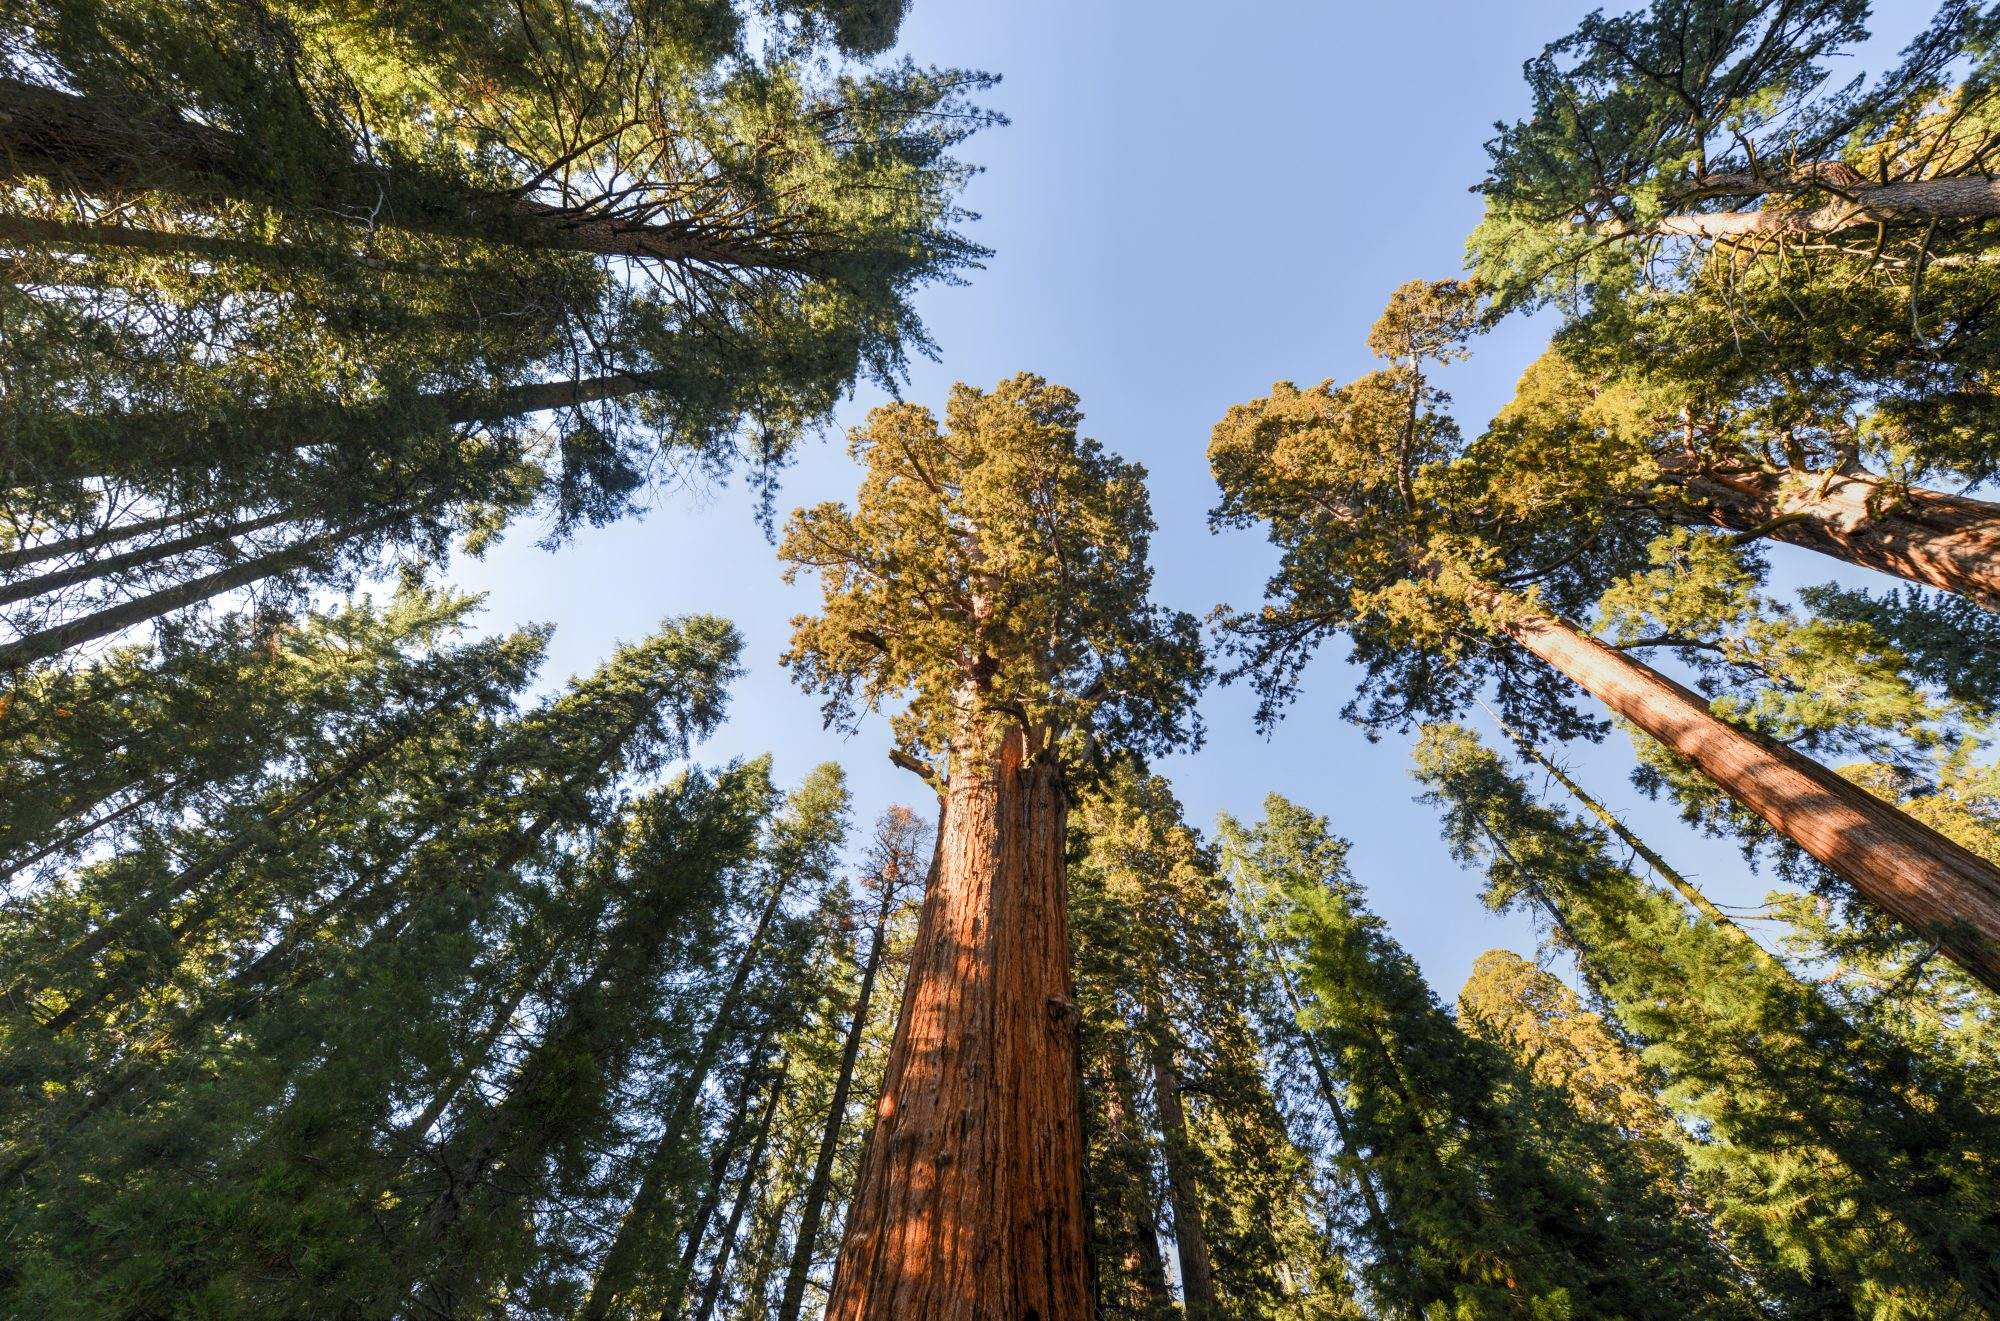 an upwards view of the General Sherman Sequoia Tree in California